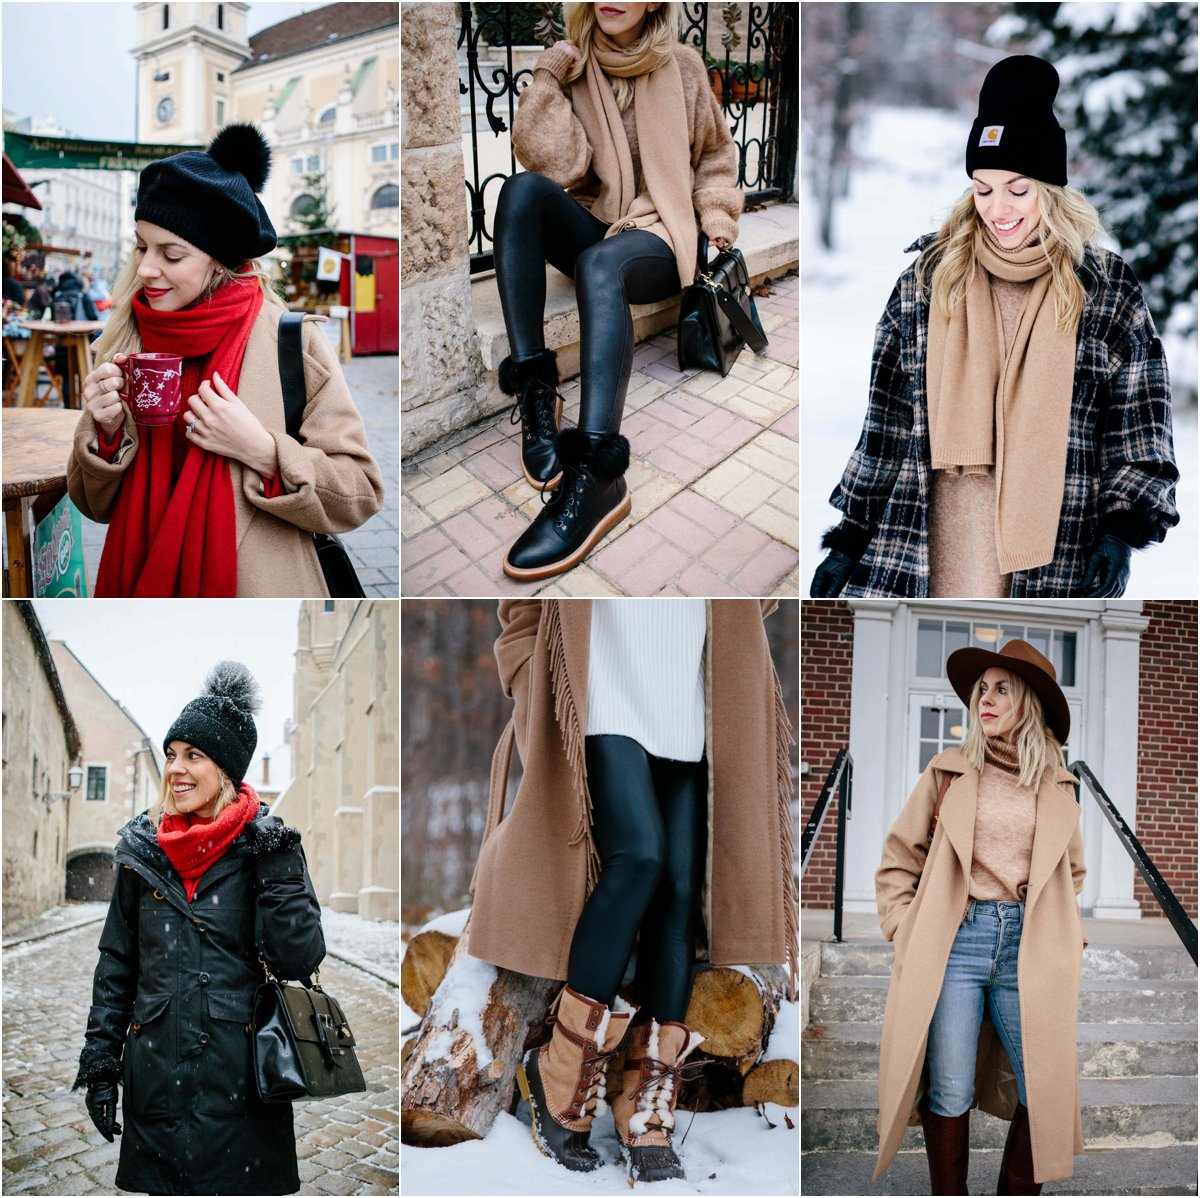 Meagan Brandon fashion blogger of Meagan's Moda shares winter wardrobe essentials every woman needs